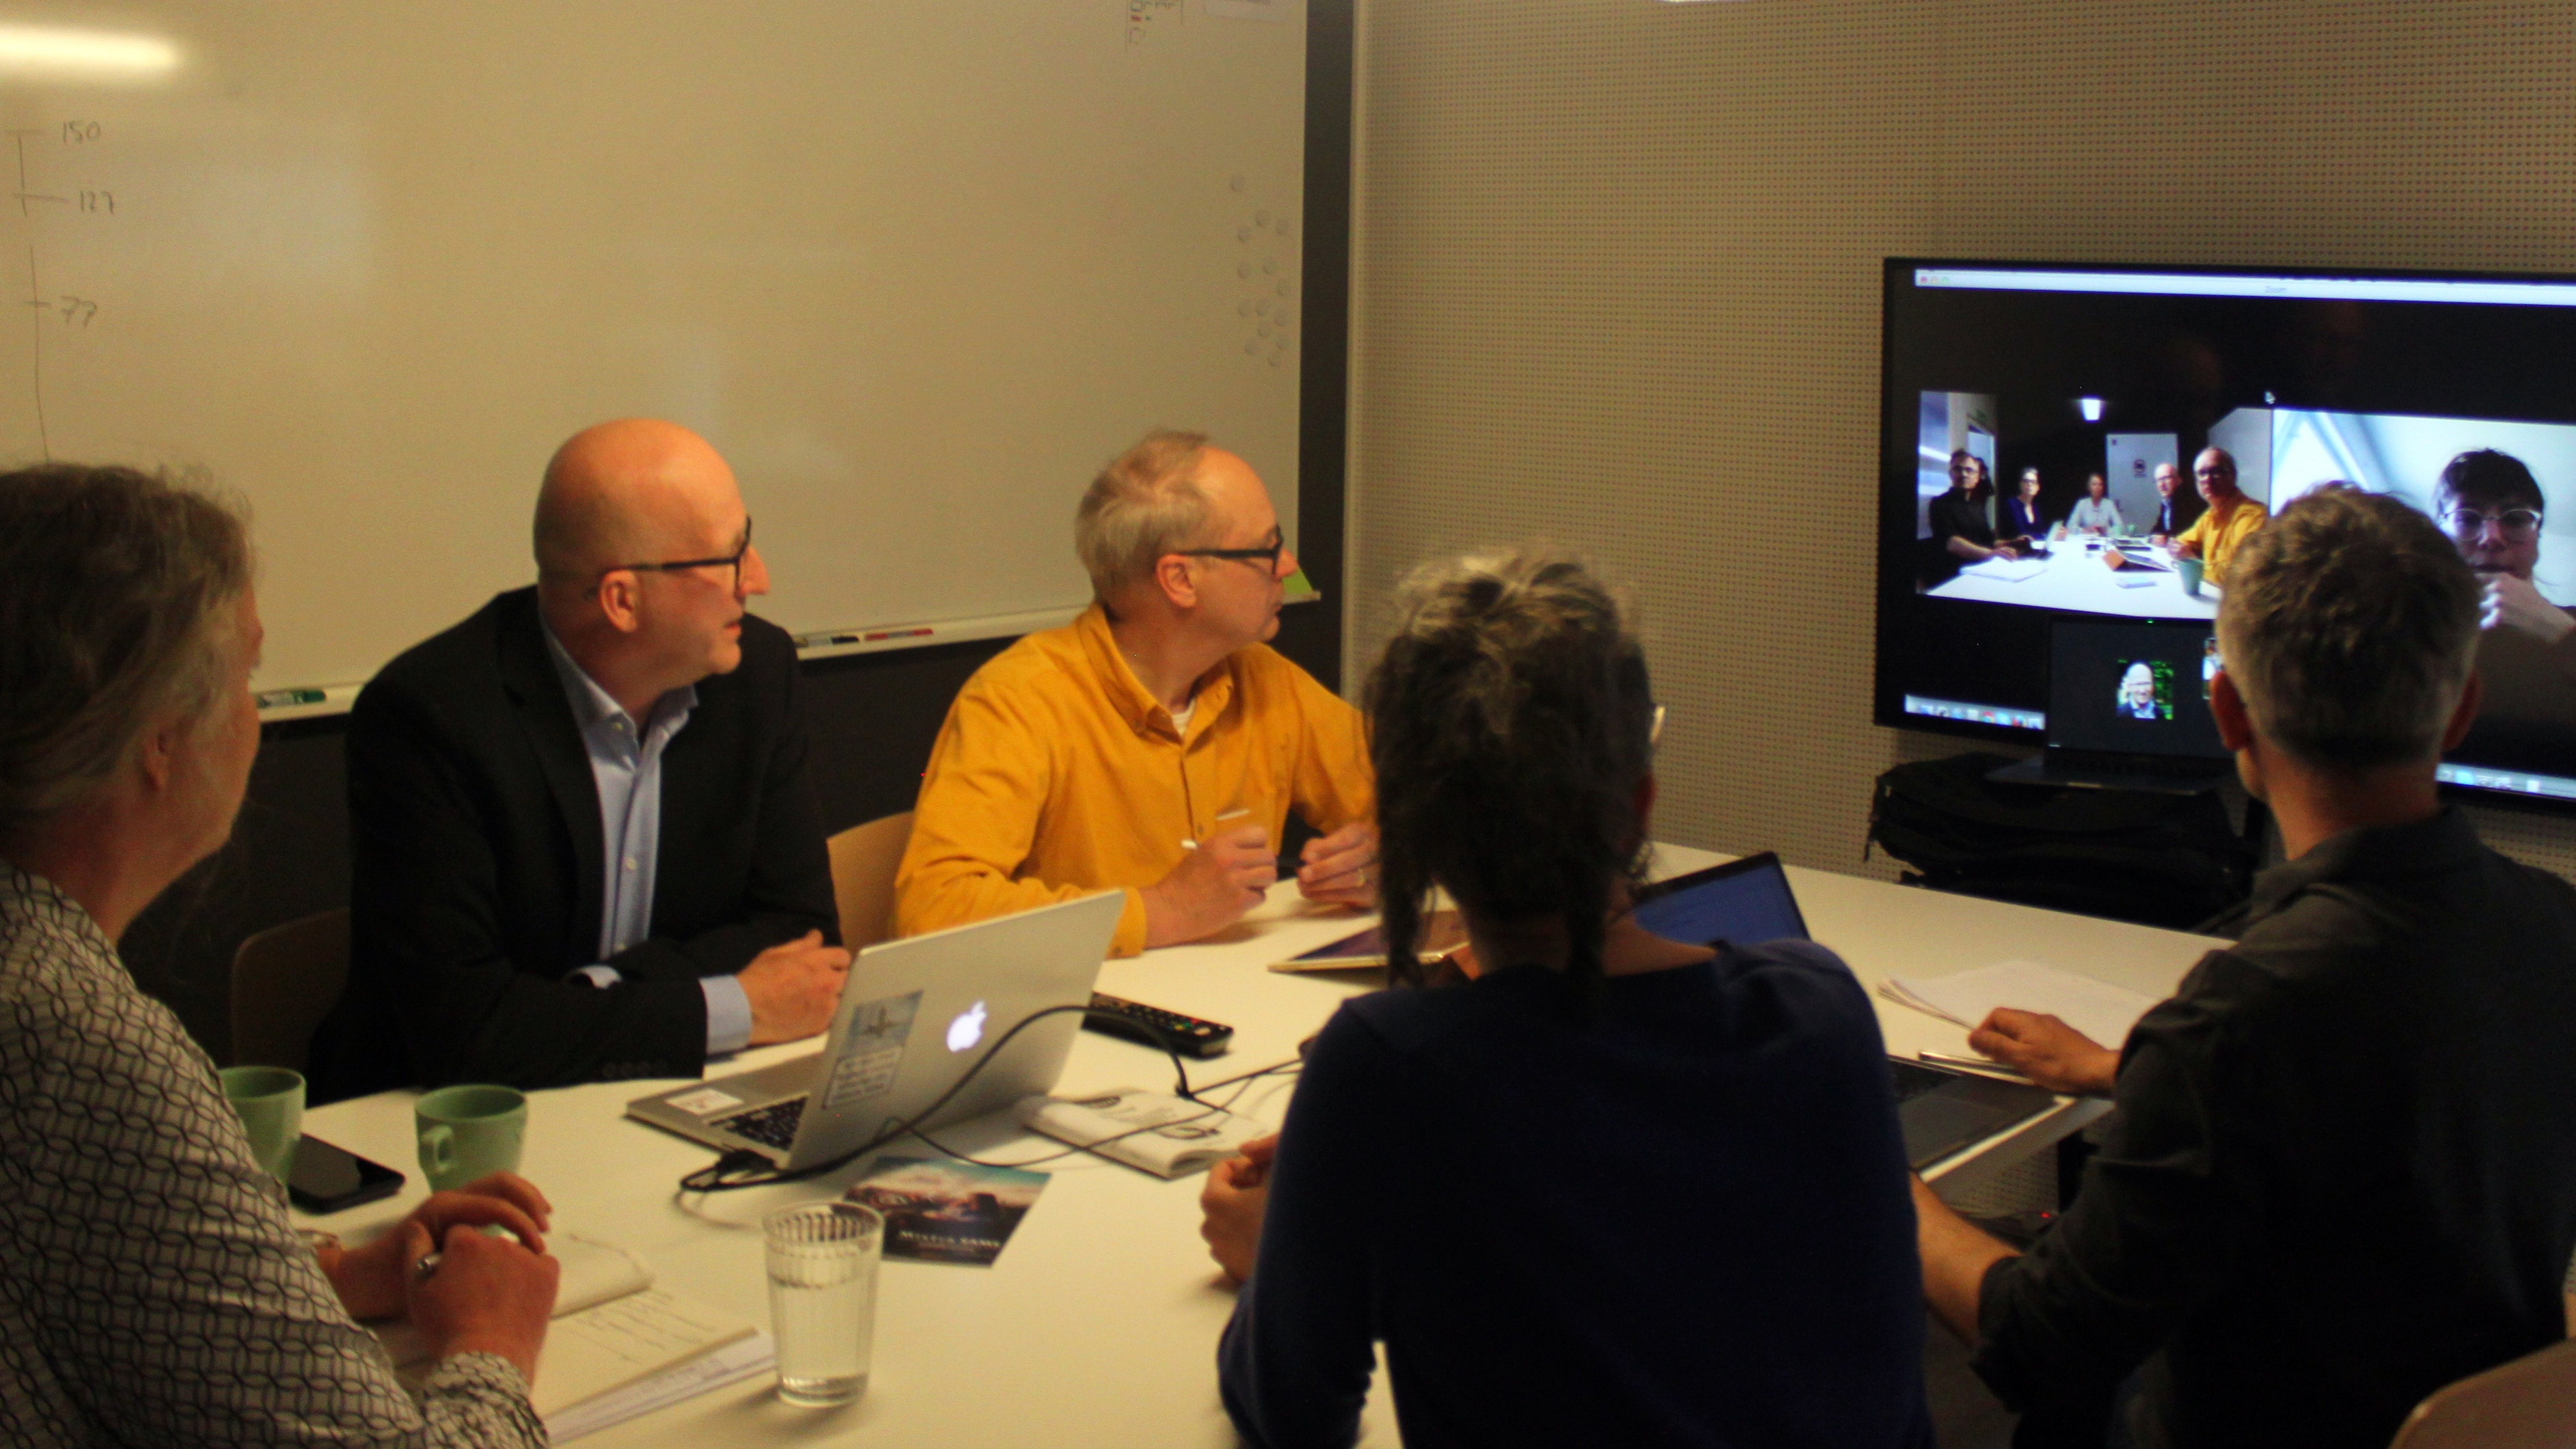 Five people around a conference table. They are looking at a screen which shows a sixth meeting participant.